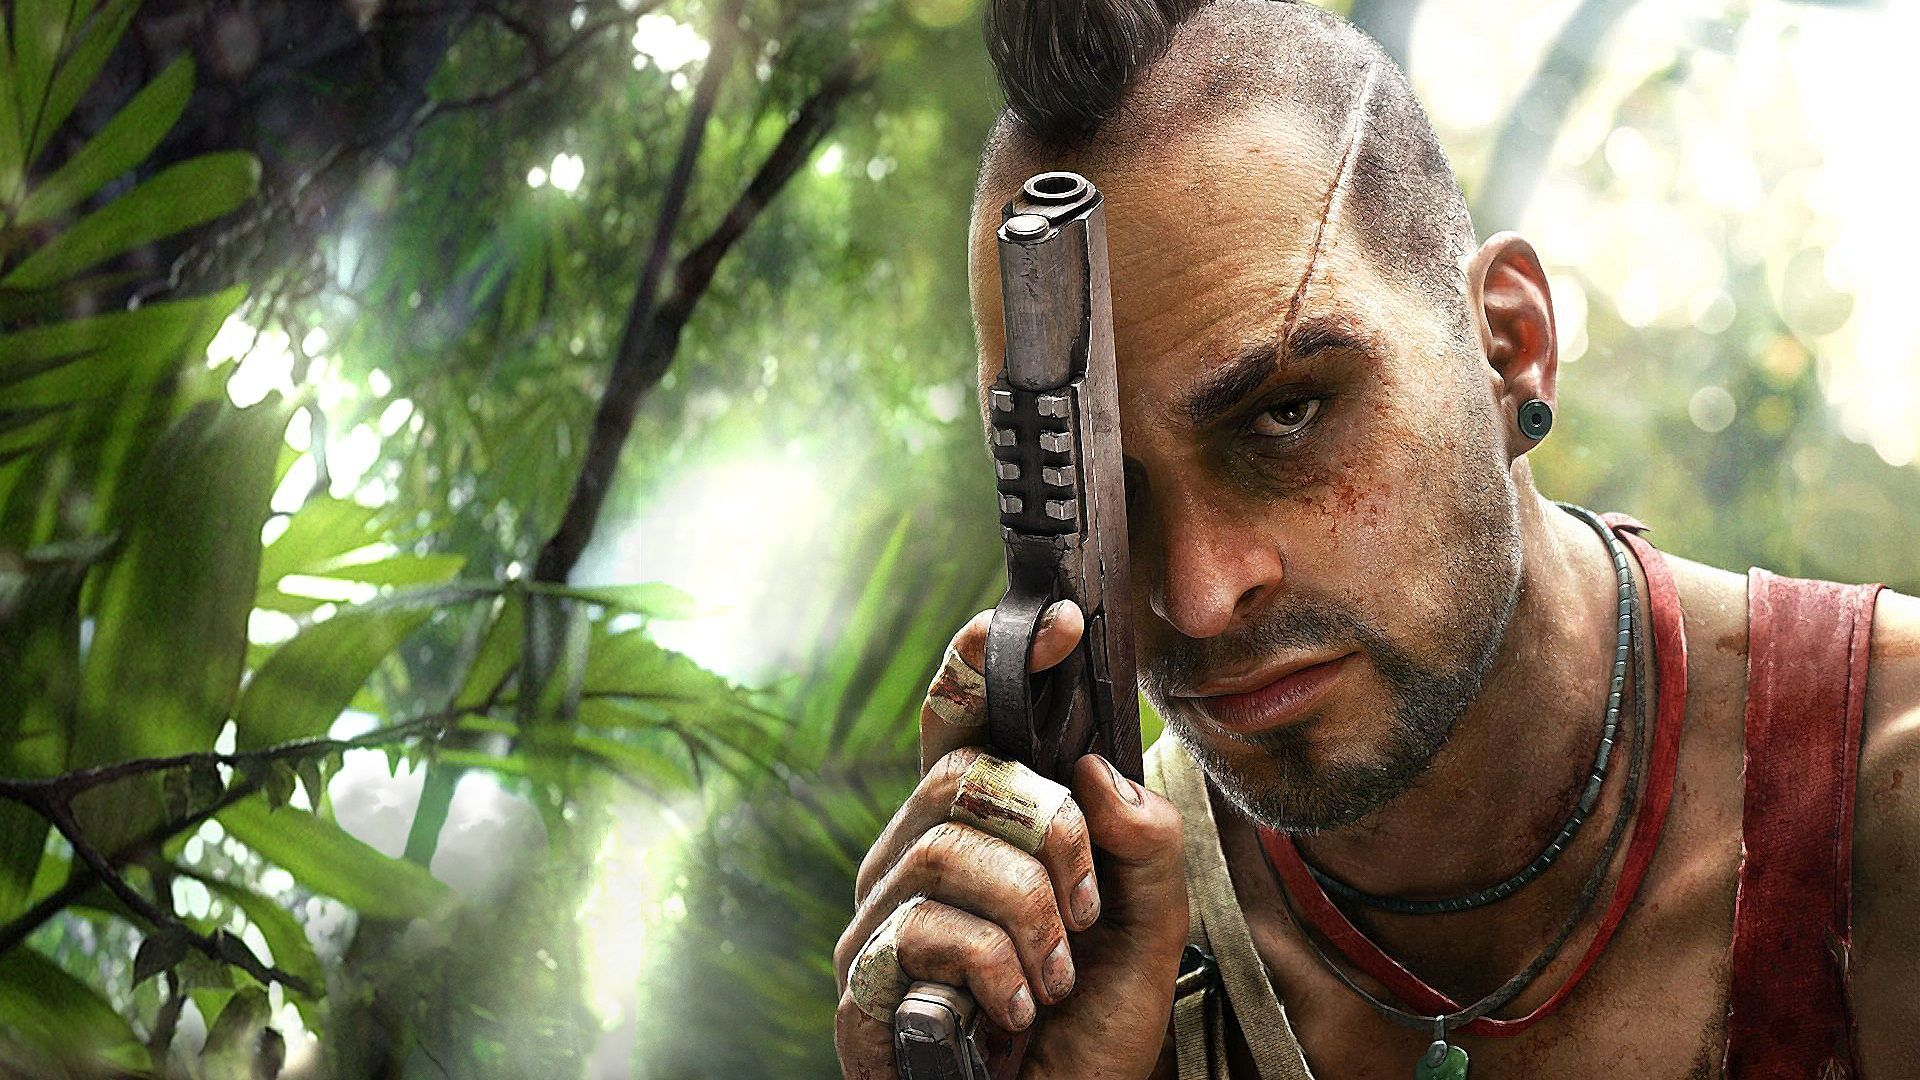 6336 - ¿Cuánto sabes de Far Cry 3?